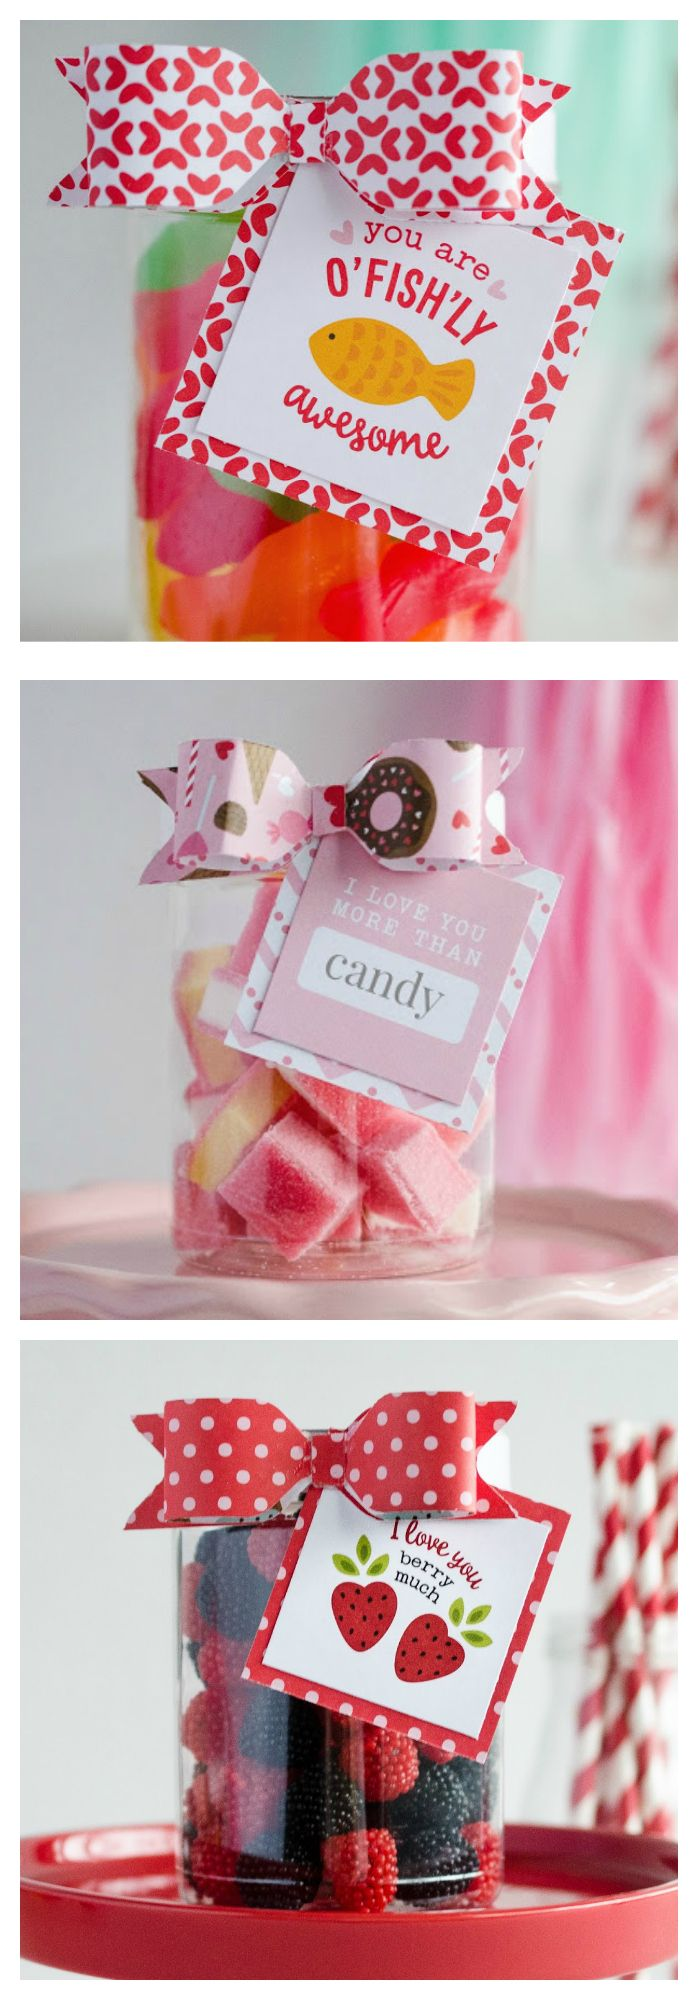 Best 25+ Valentine ideas ideas on Pinterest | Valentines, Sweet ...